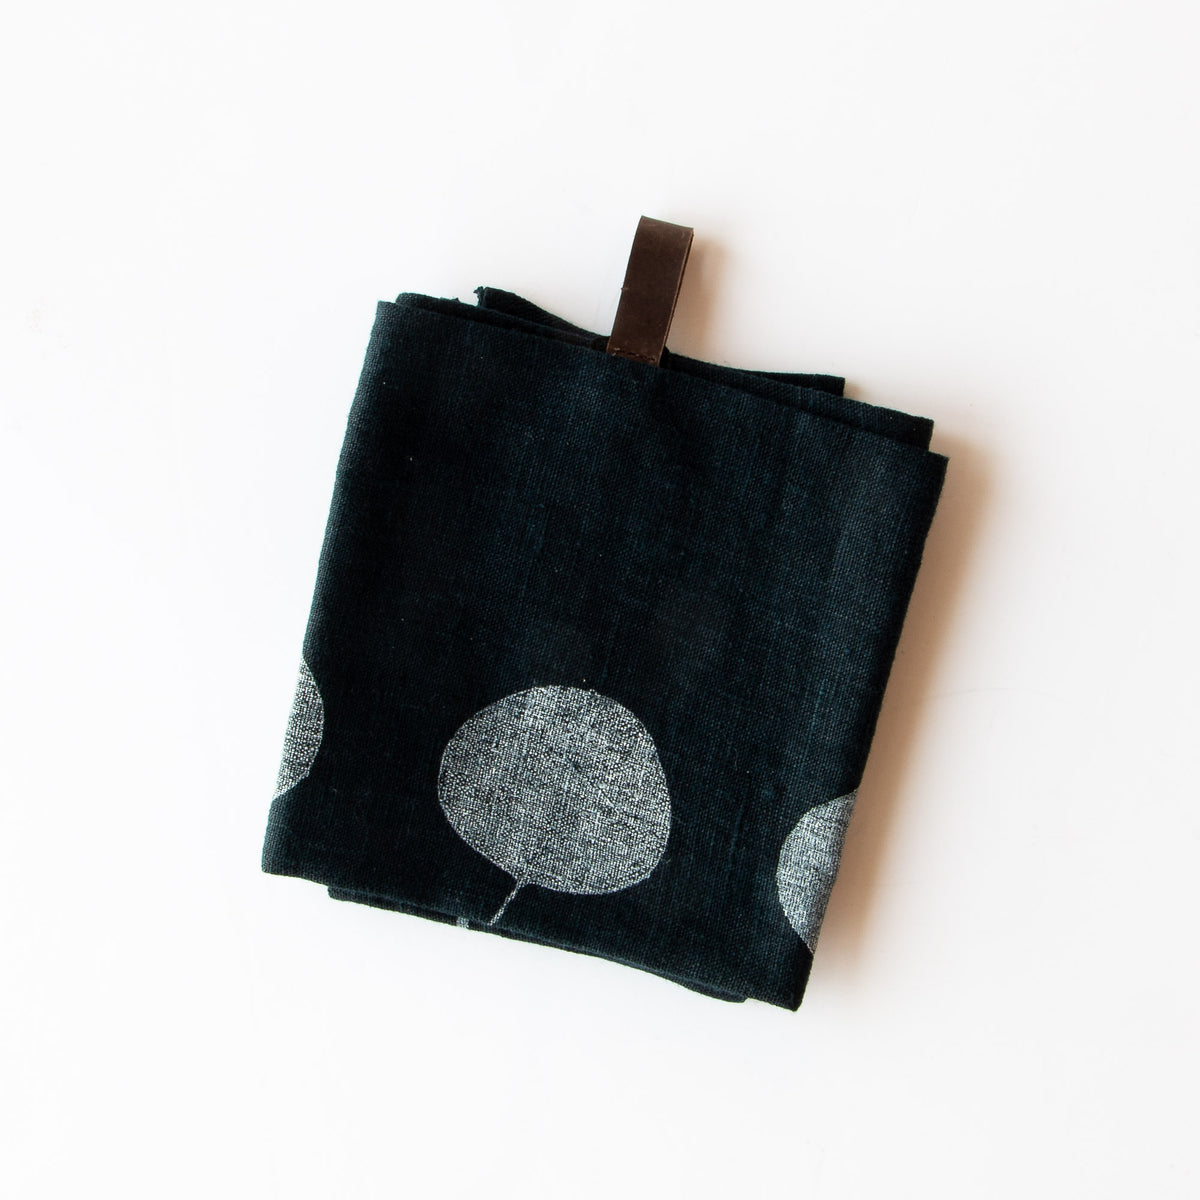 Five Times a Day - Folded Handprinted 100% Linen Dish Cloth / Hand Towel - Sold by Chic & Basta